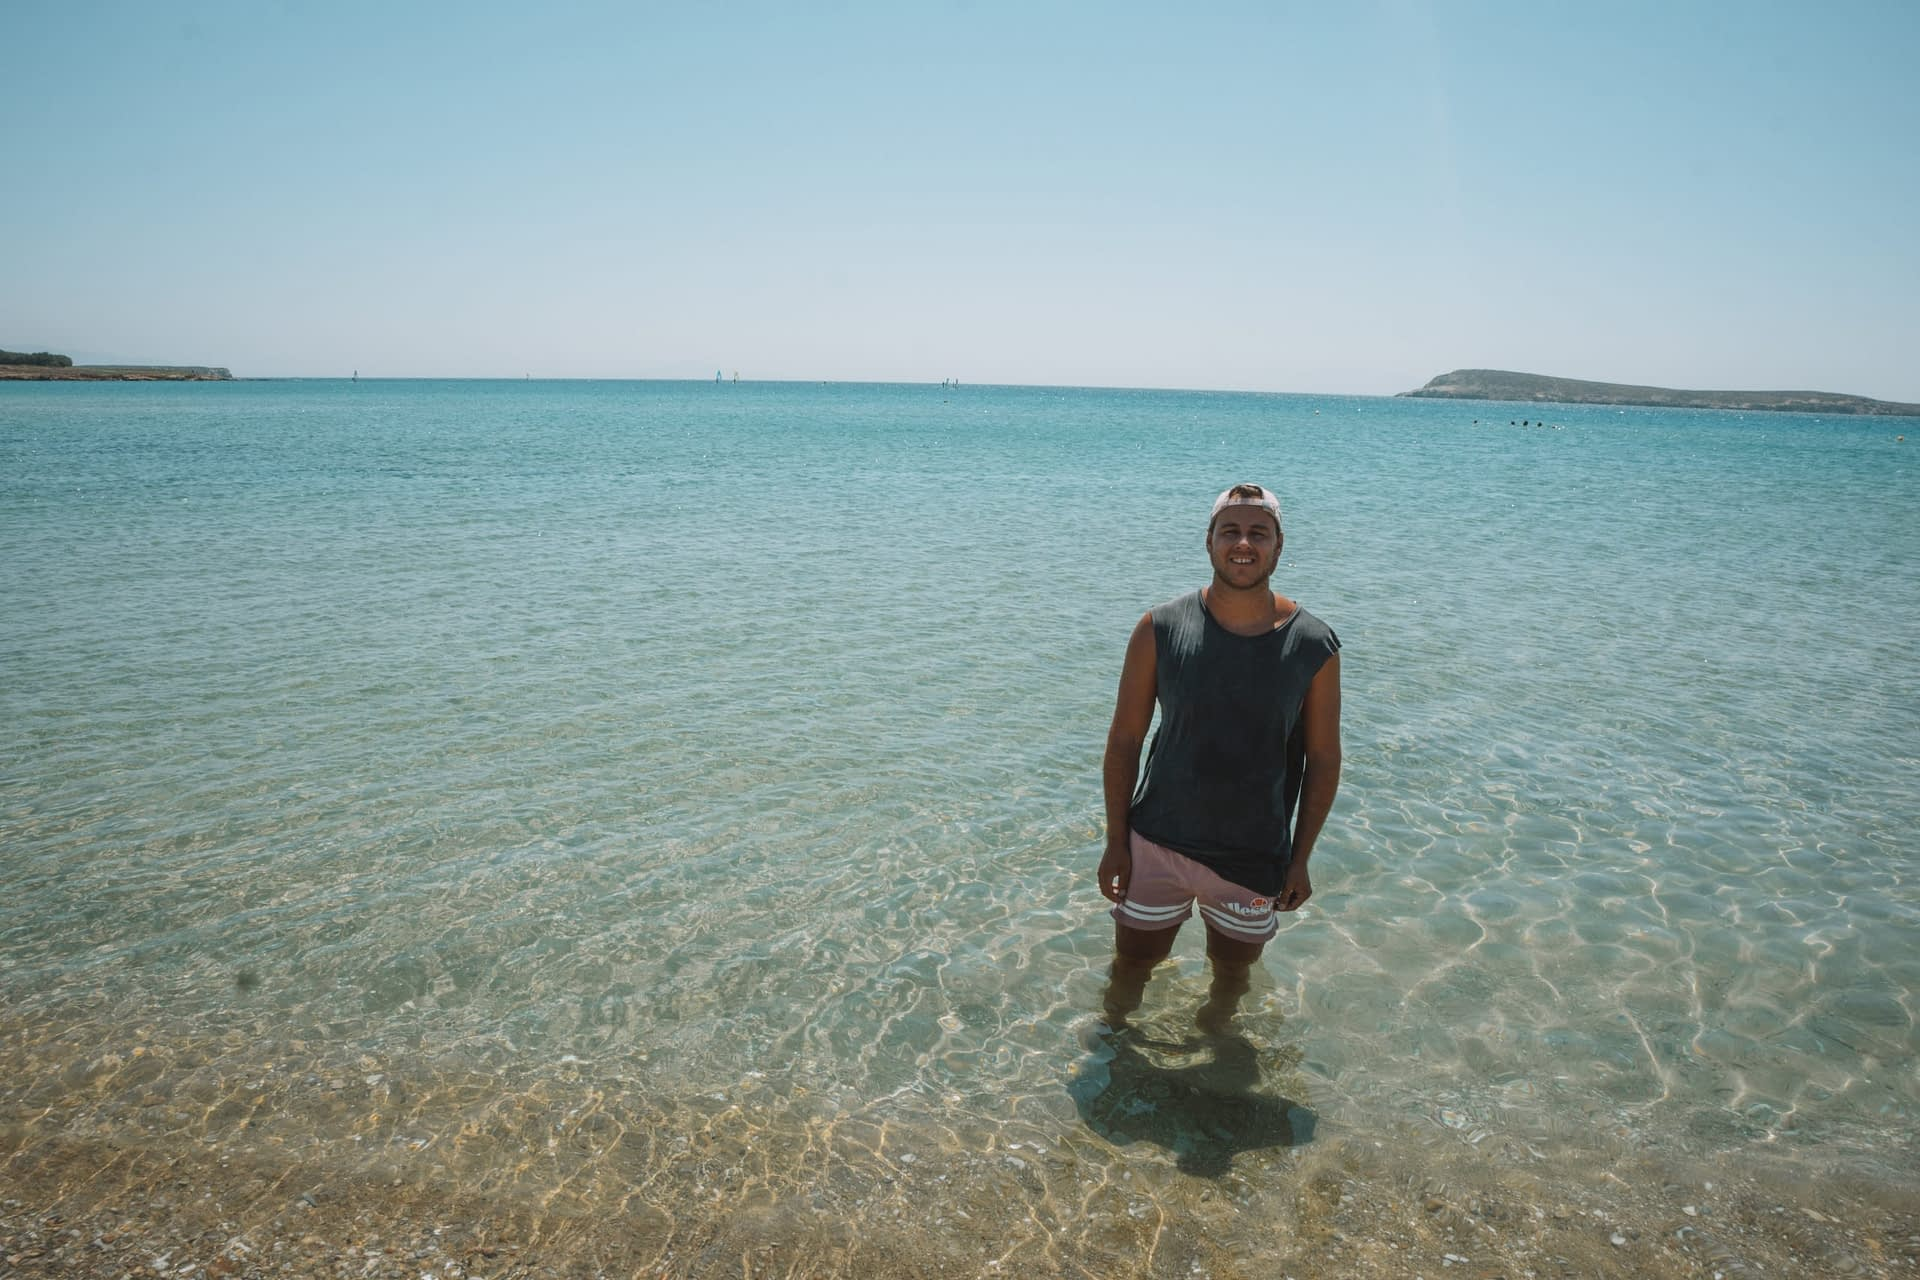 A man stood in turquoise water in Paros